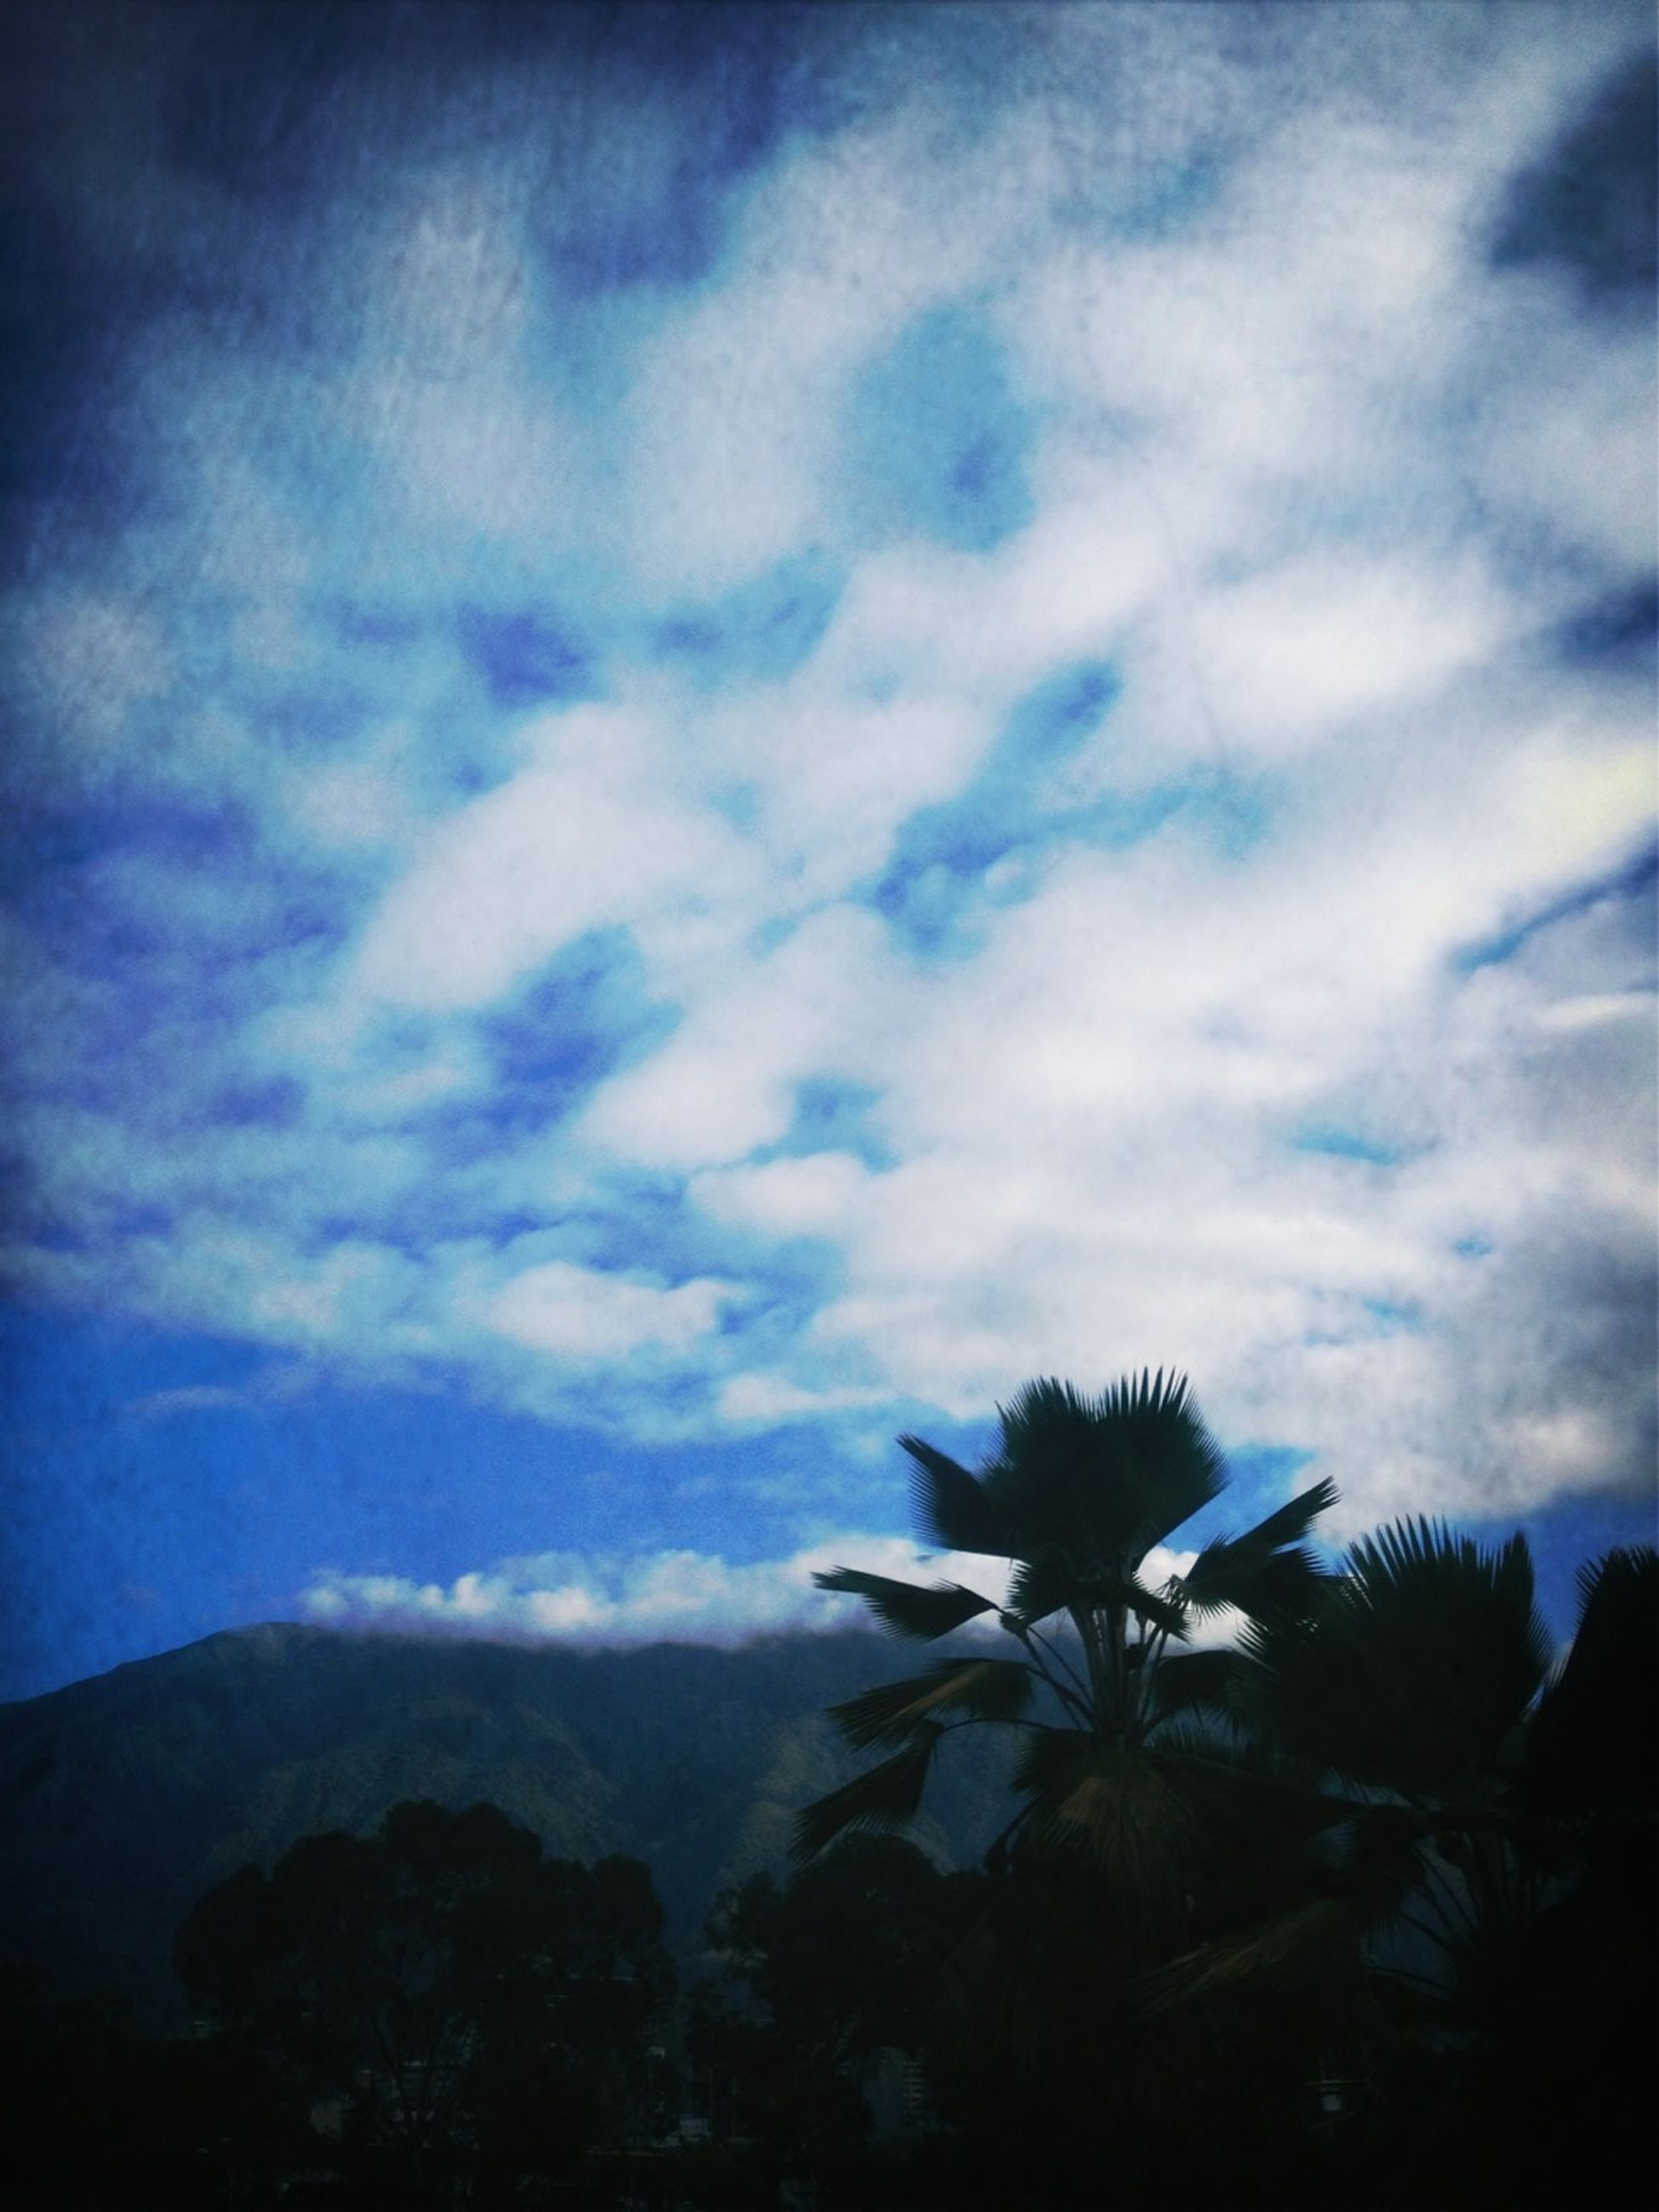 sky, beauty in nature, cloud - sky, tranquility, nature, tranquil scene, scenics, mountain, low angle view, growth, cloudy, cloud, tree, silhouette, outdoors, blue, mountain range, no people, plant, day